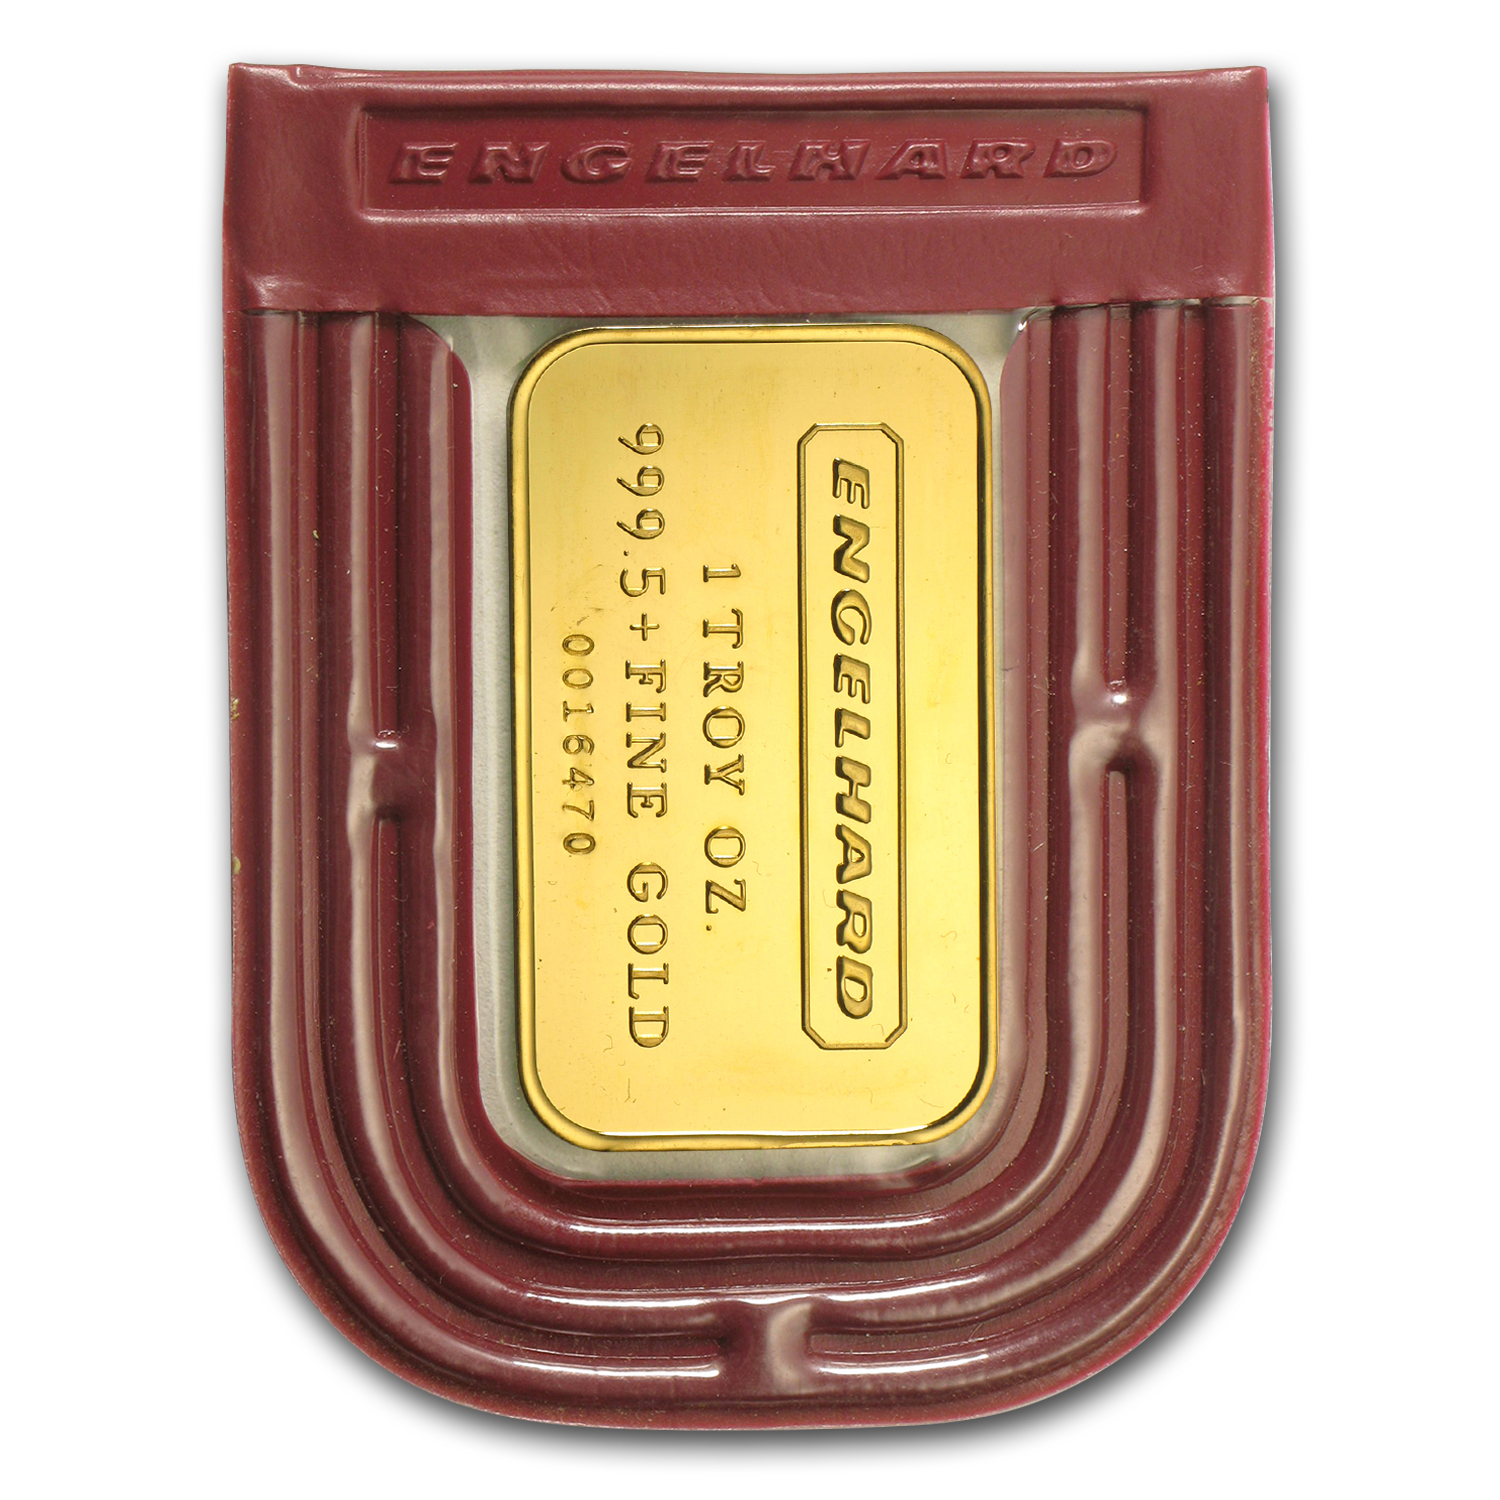 1 oz Gold Bar - Engelhard (Original Packing, Frosted Reverse)